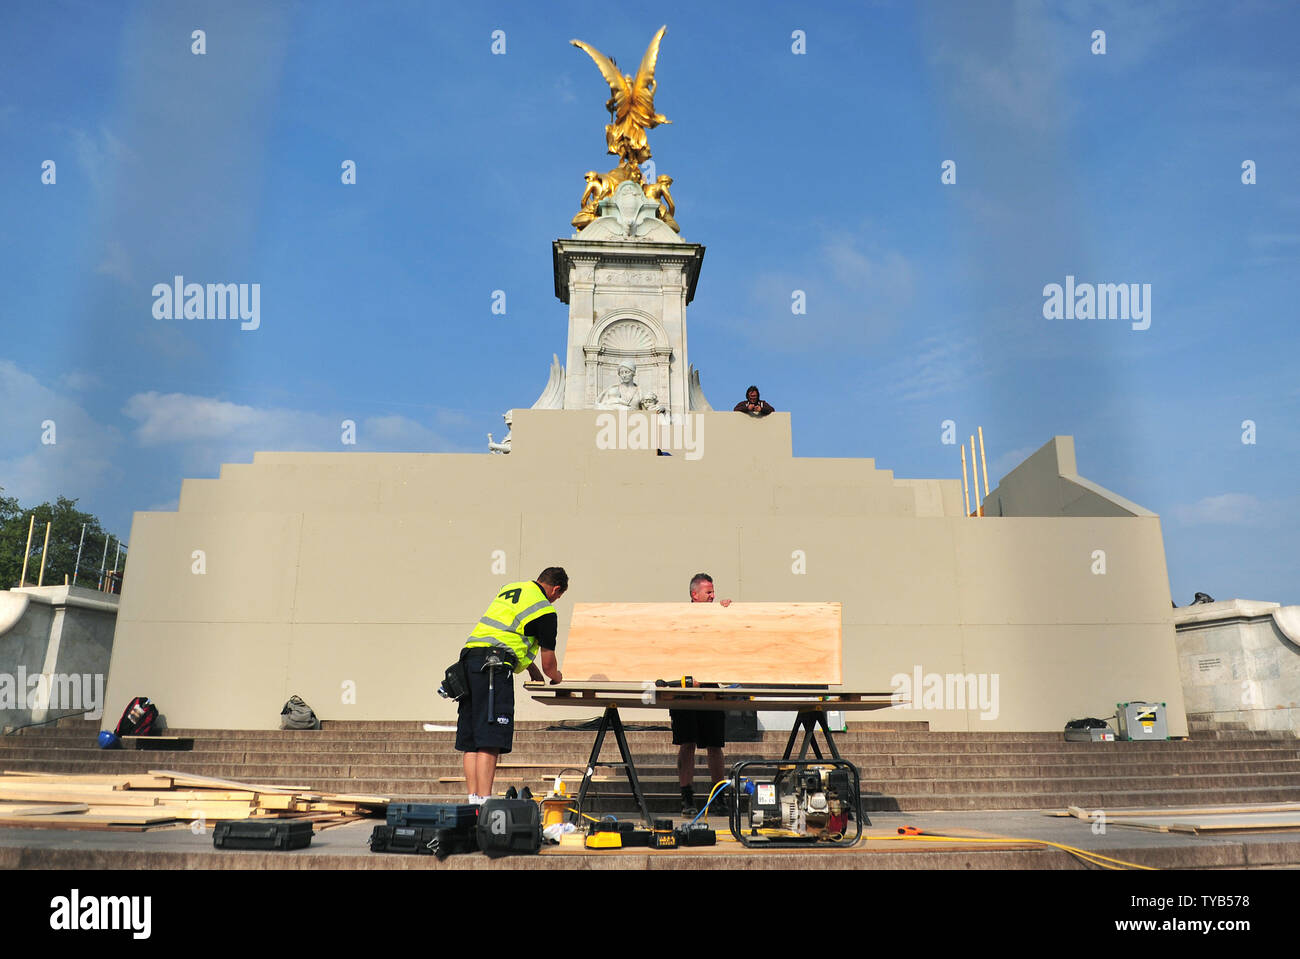 Workers put the finishing touches on a media stand in front of Buckingham Palace in preparation for the royal wedding, in London, April 26, 2011.  The Royal Wedding of Prince William and Kate Middleton will take place on April 29th, 2011.  UPI/Kevin Dietsch - Stock Image